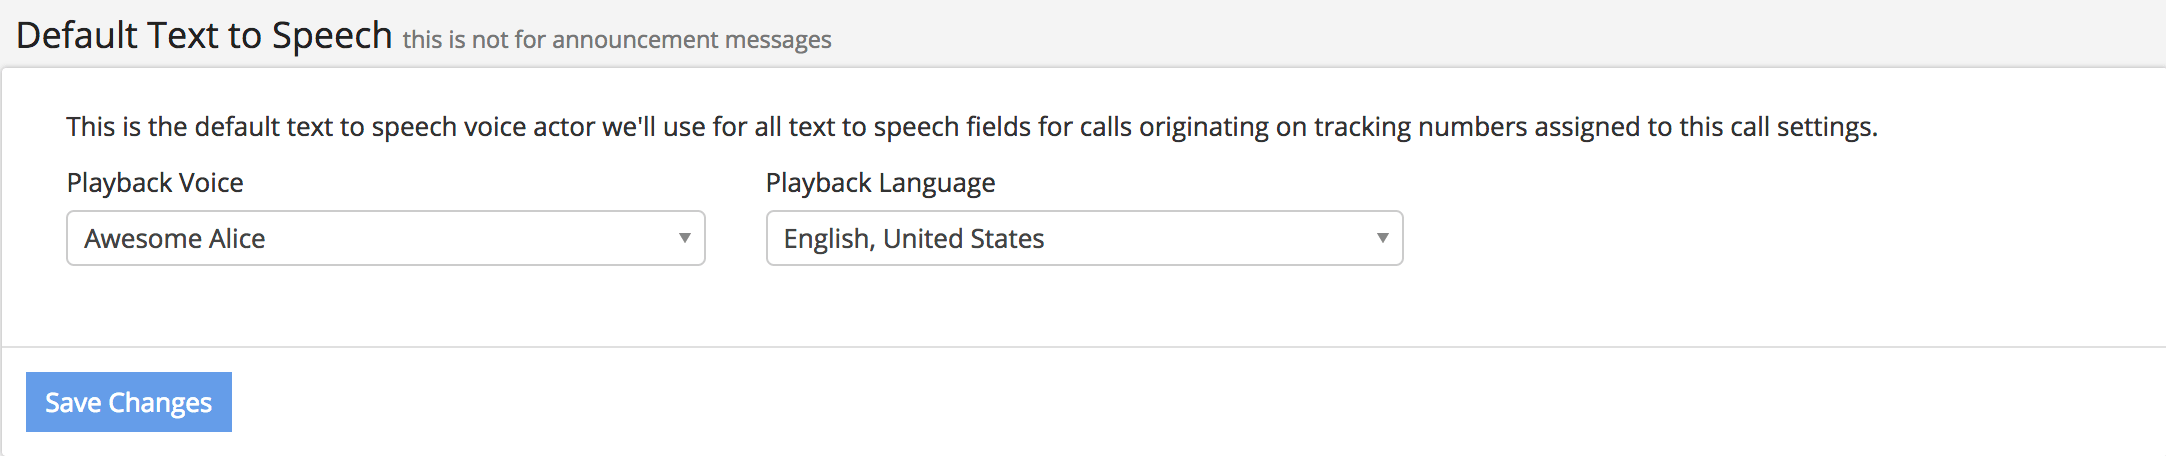 Set Default Text to Speech